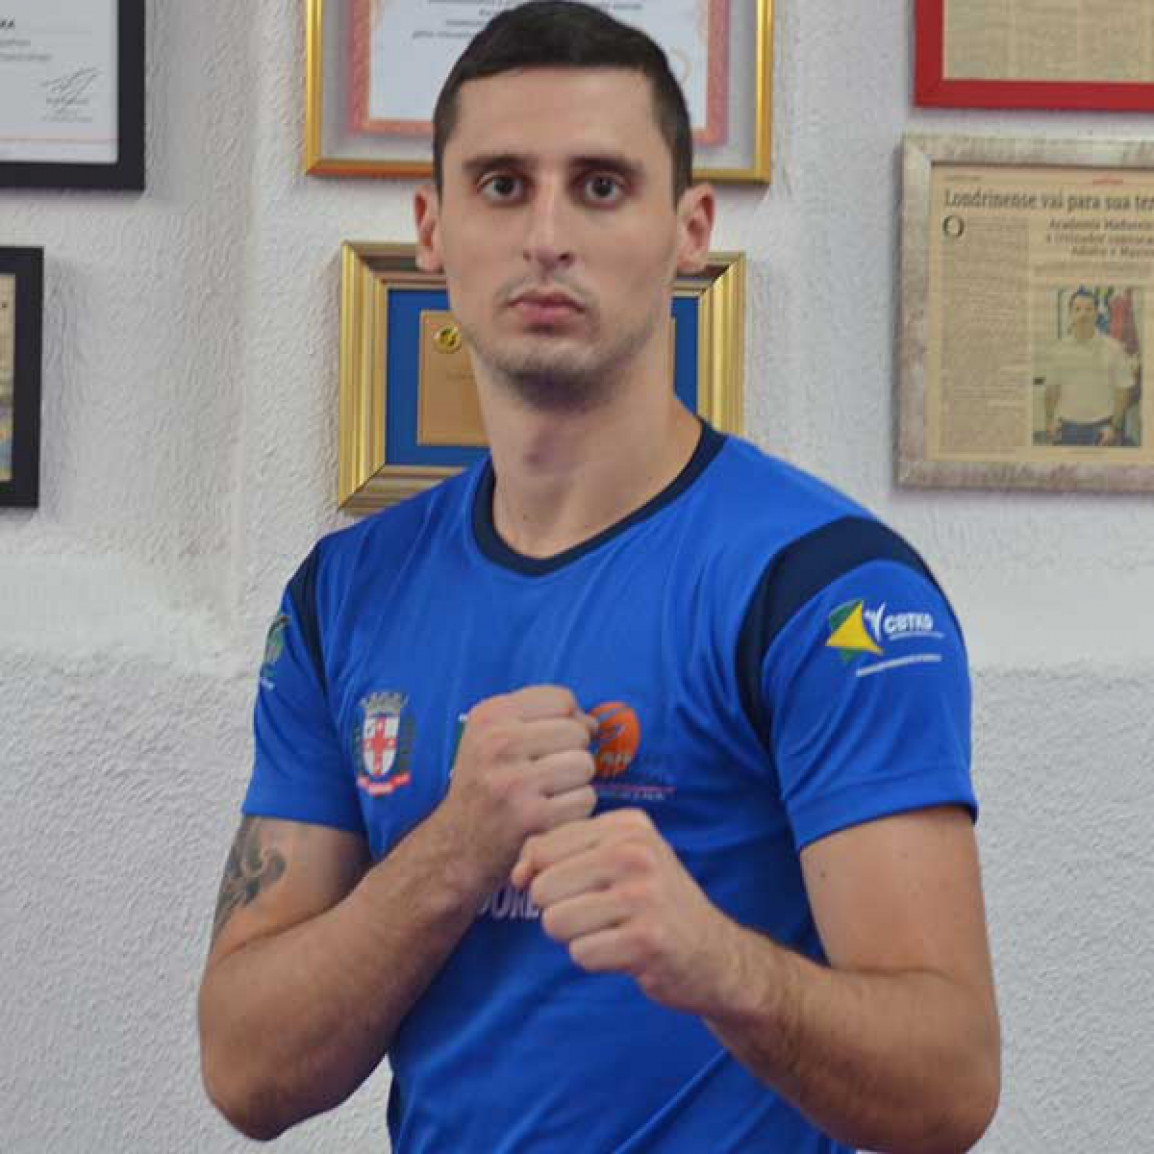 Joao-Pedro-Chaves-reserva-ate-80Kg-adulto